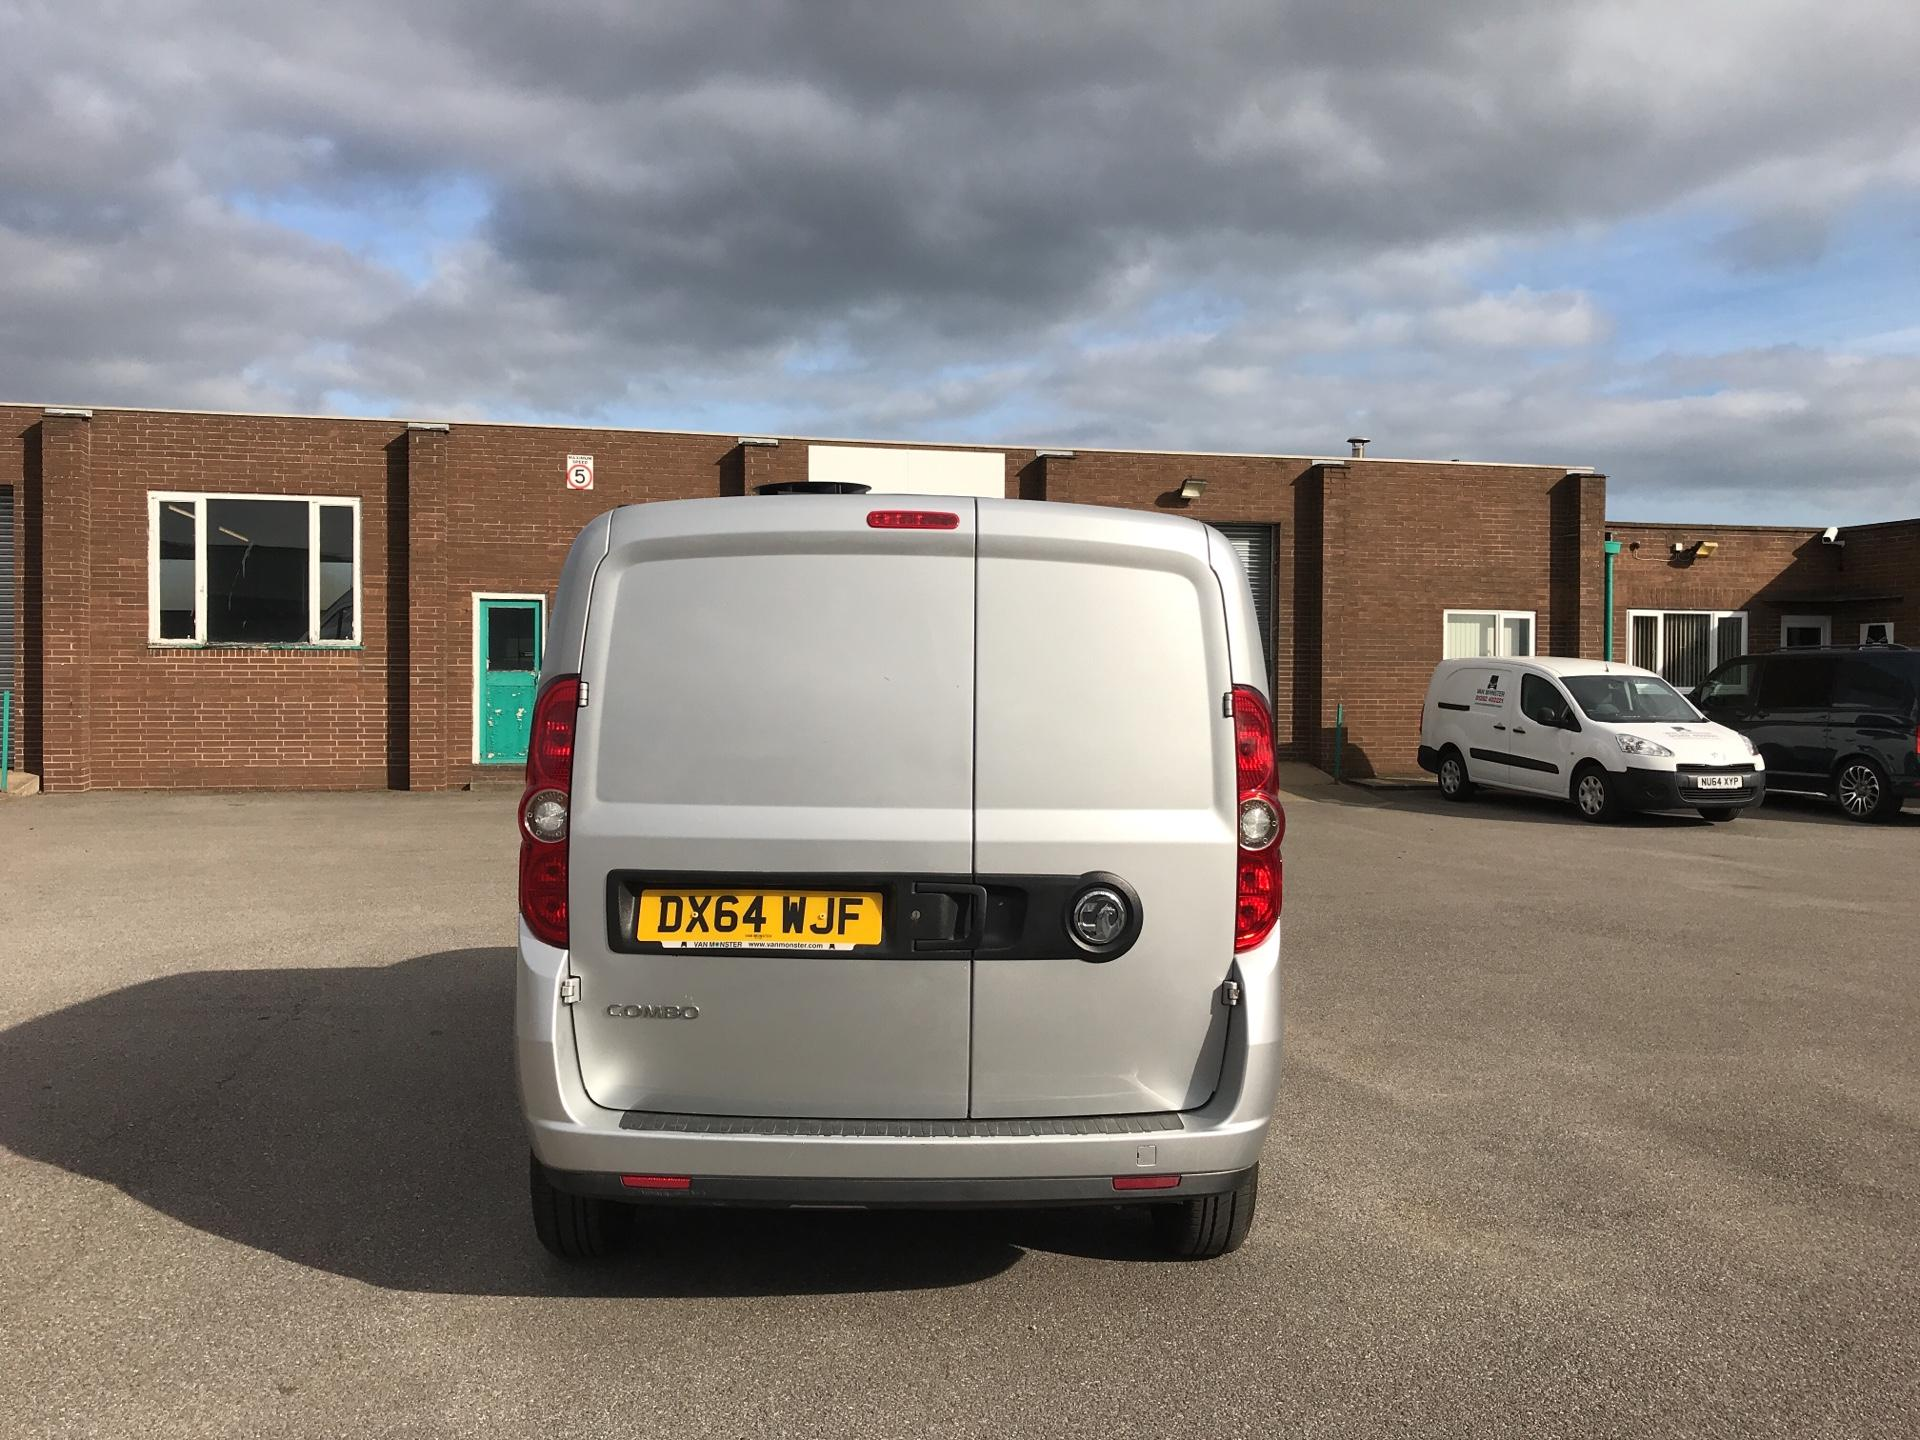 2014 Vauxhall Combo  L1 H1 2000 1.3 16V SPORTIVE EURO 5 AIR CON (DX64WJF) Image 4